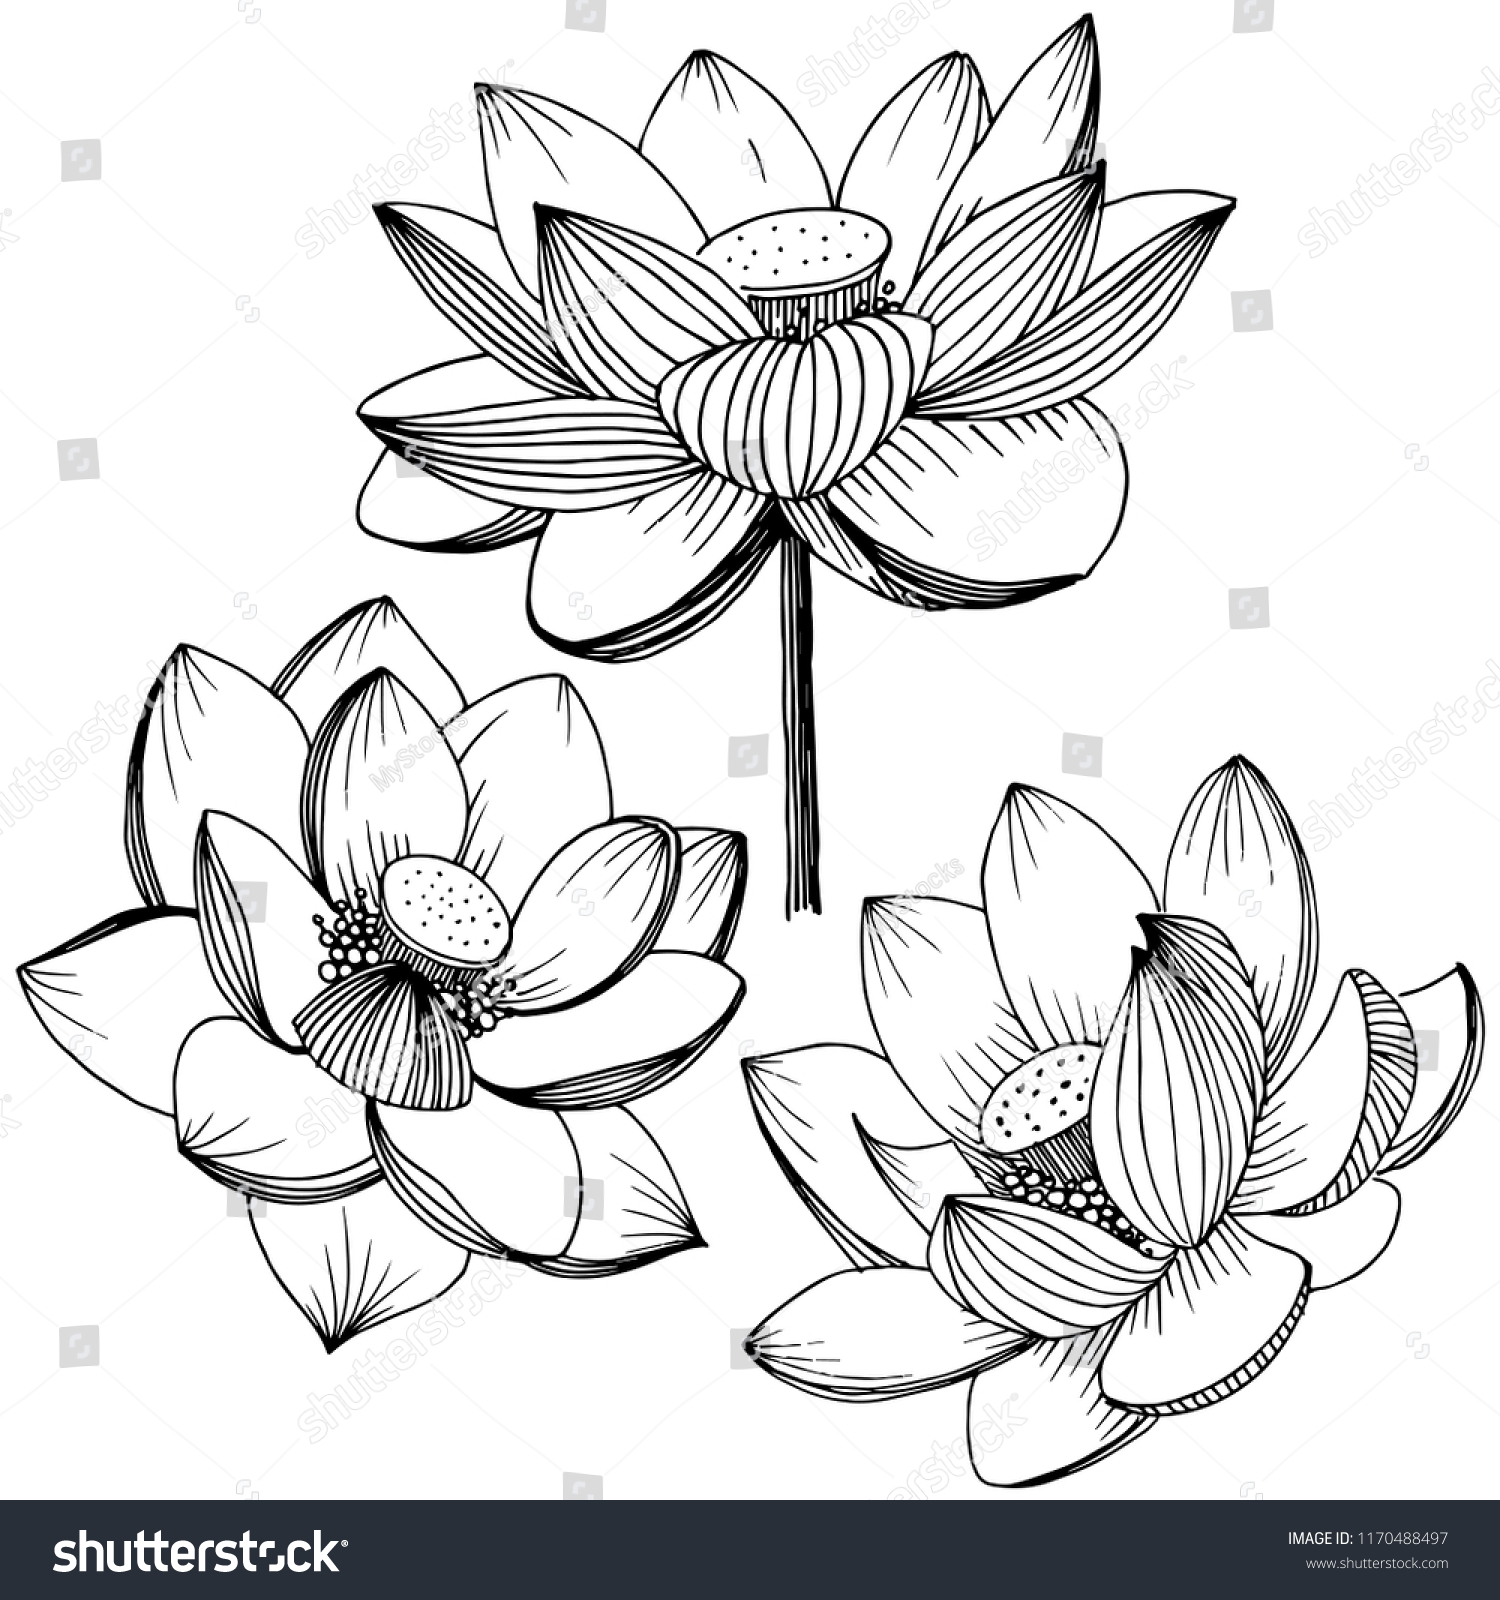 Water Lily Hand Drawn Ink Illustration Vector Ez Canvas